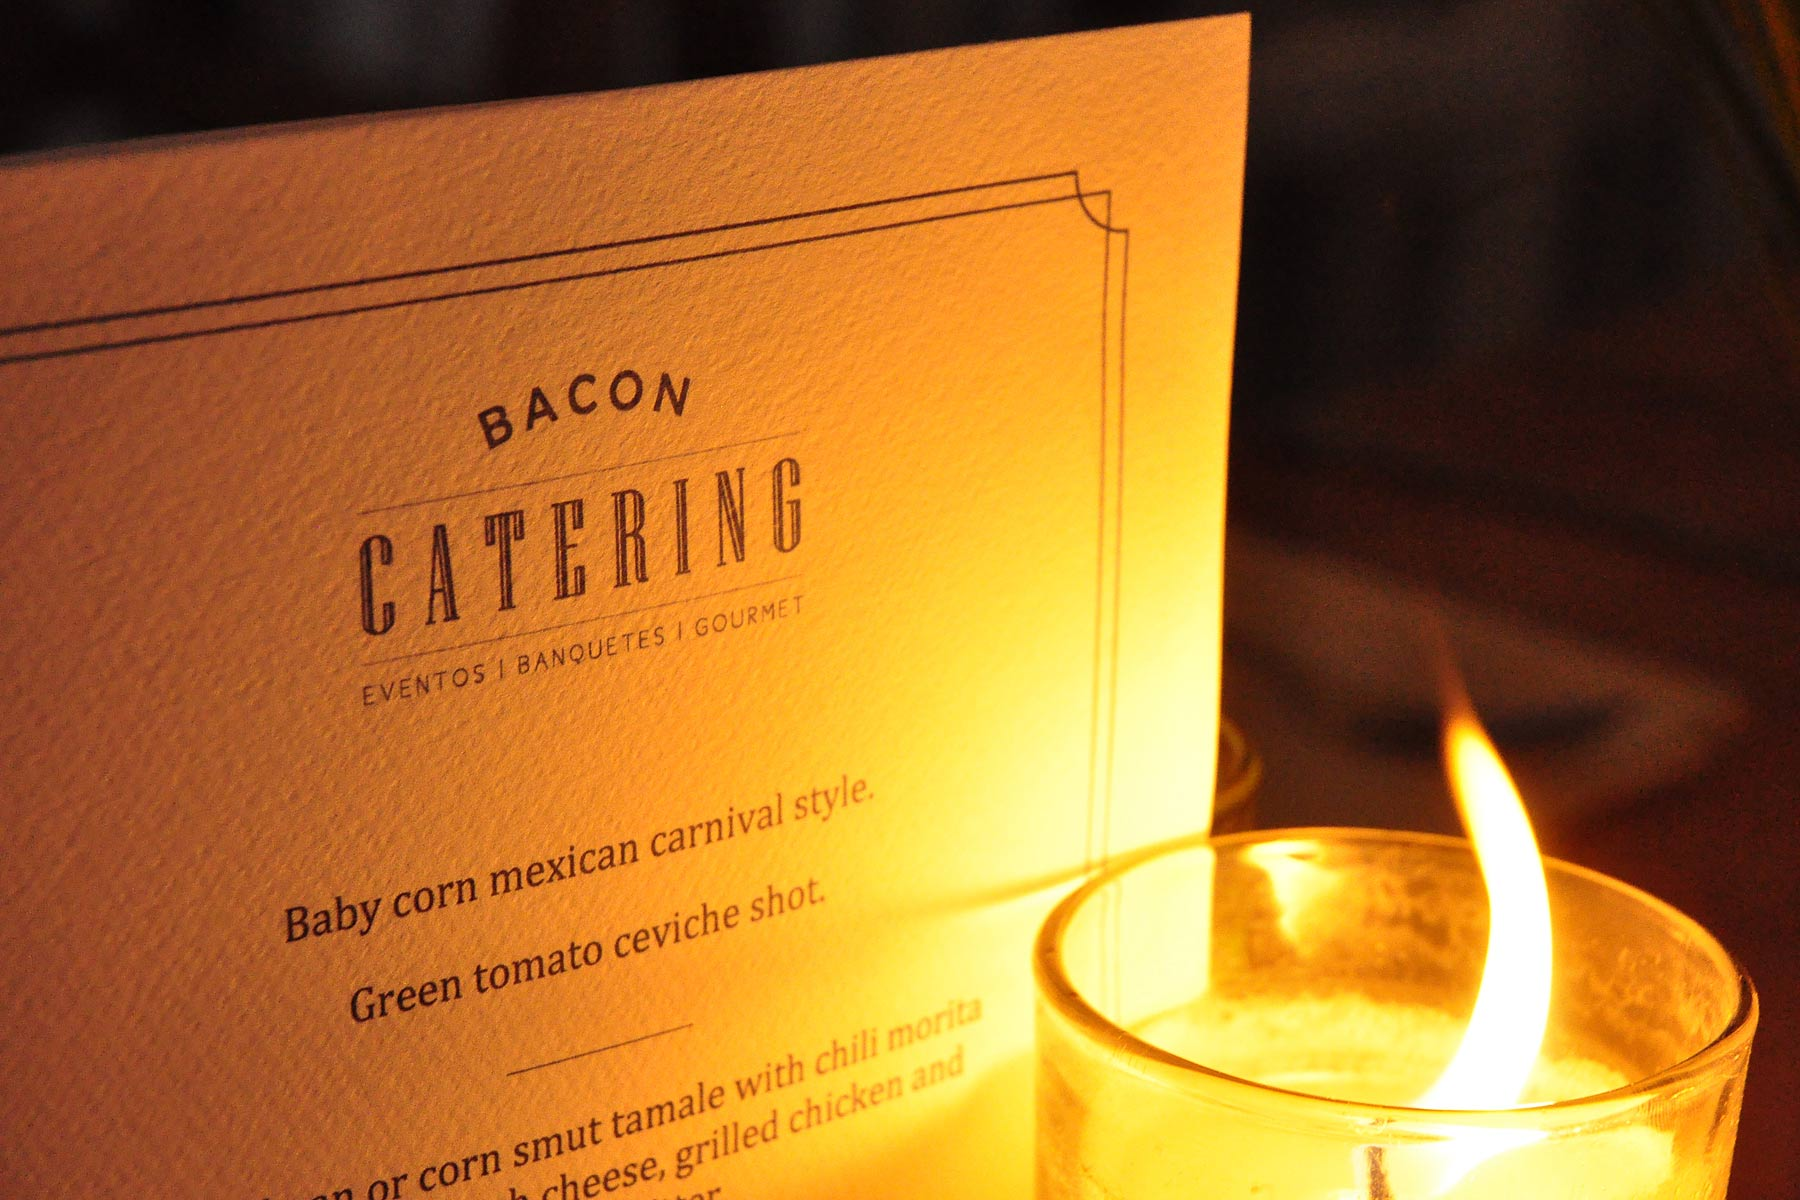 bacon_catering_4